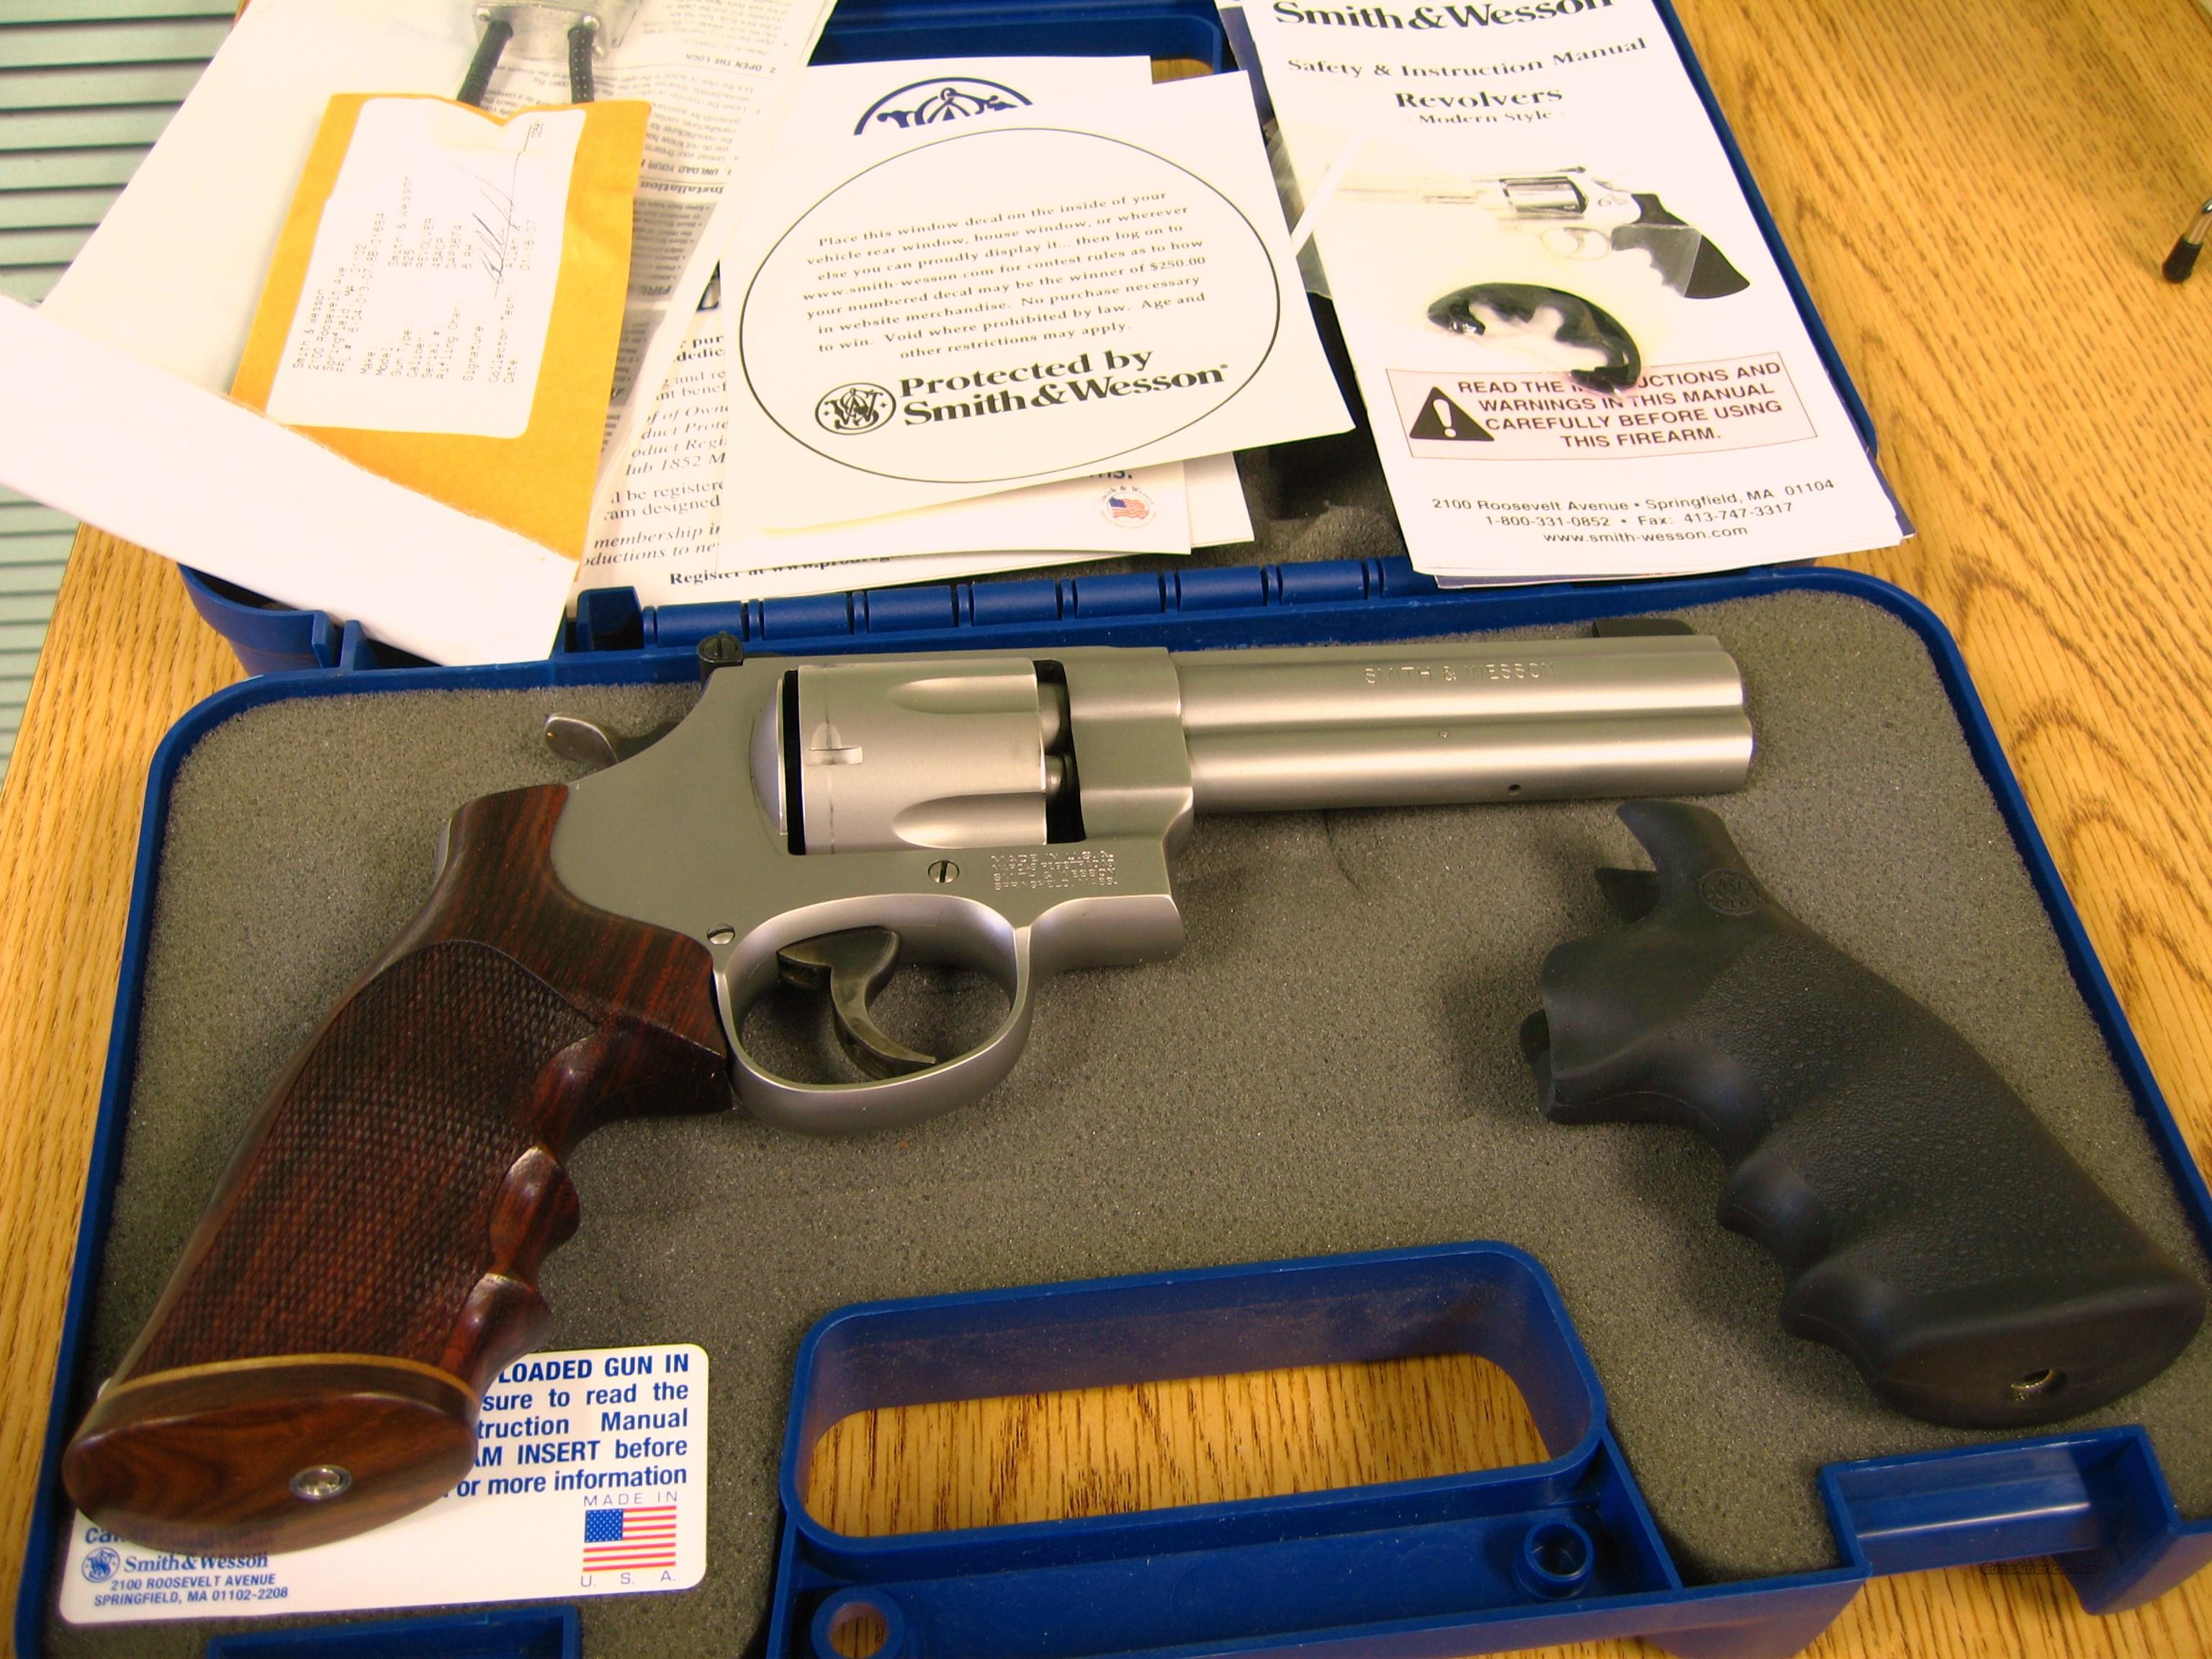 SMITH & WESSON 625-8 W/CUSTOM ROSEWOOD GRIPS  Guns > Pistols > Smith & Wesson Revolvers > Full Frame Revolver